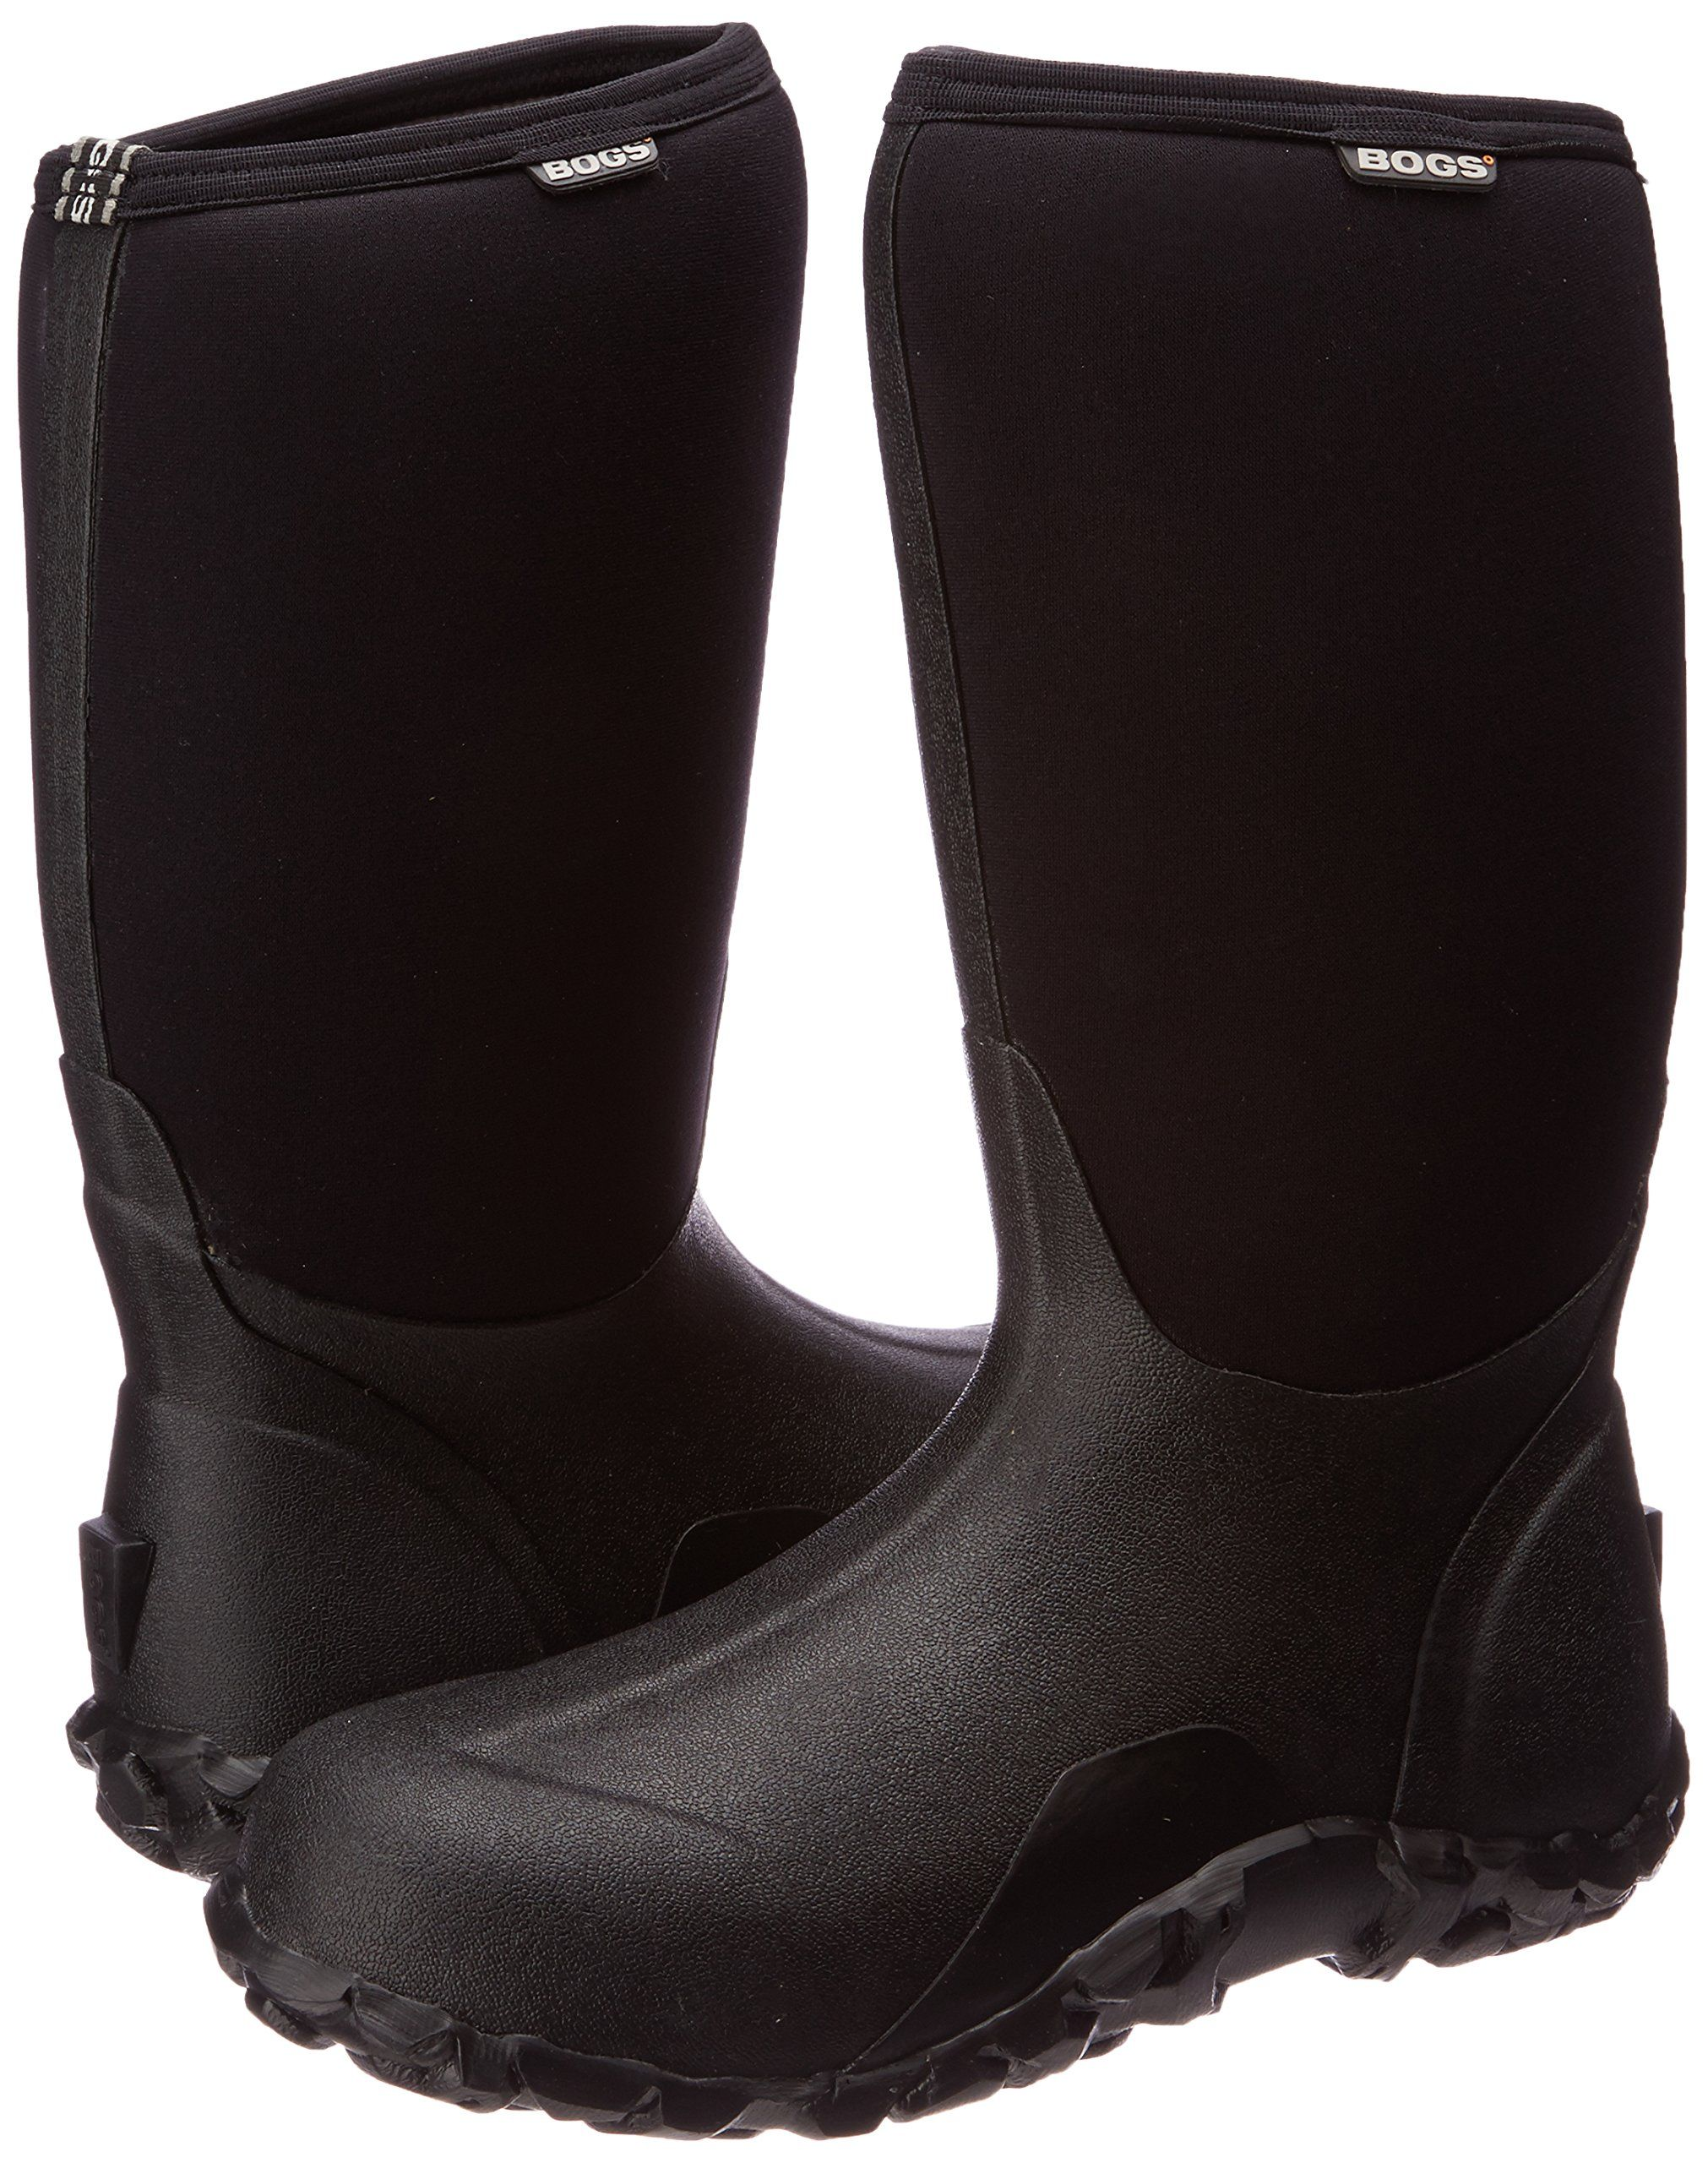 Bogs Mens Classic High Waterproof Insulated Rain Boot Black 9 Dm Us Visit The Image Link More Details This I Mens Waterproof Boots Boots Waterproof Boots